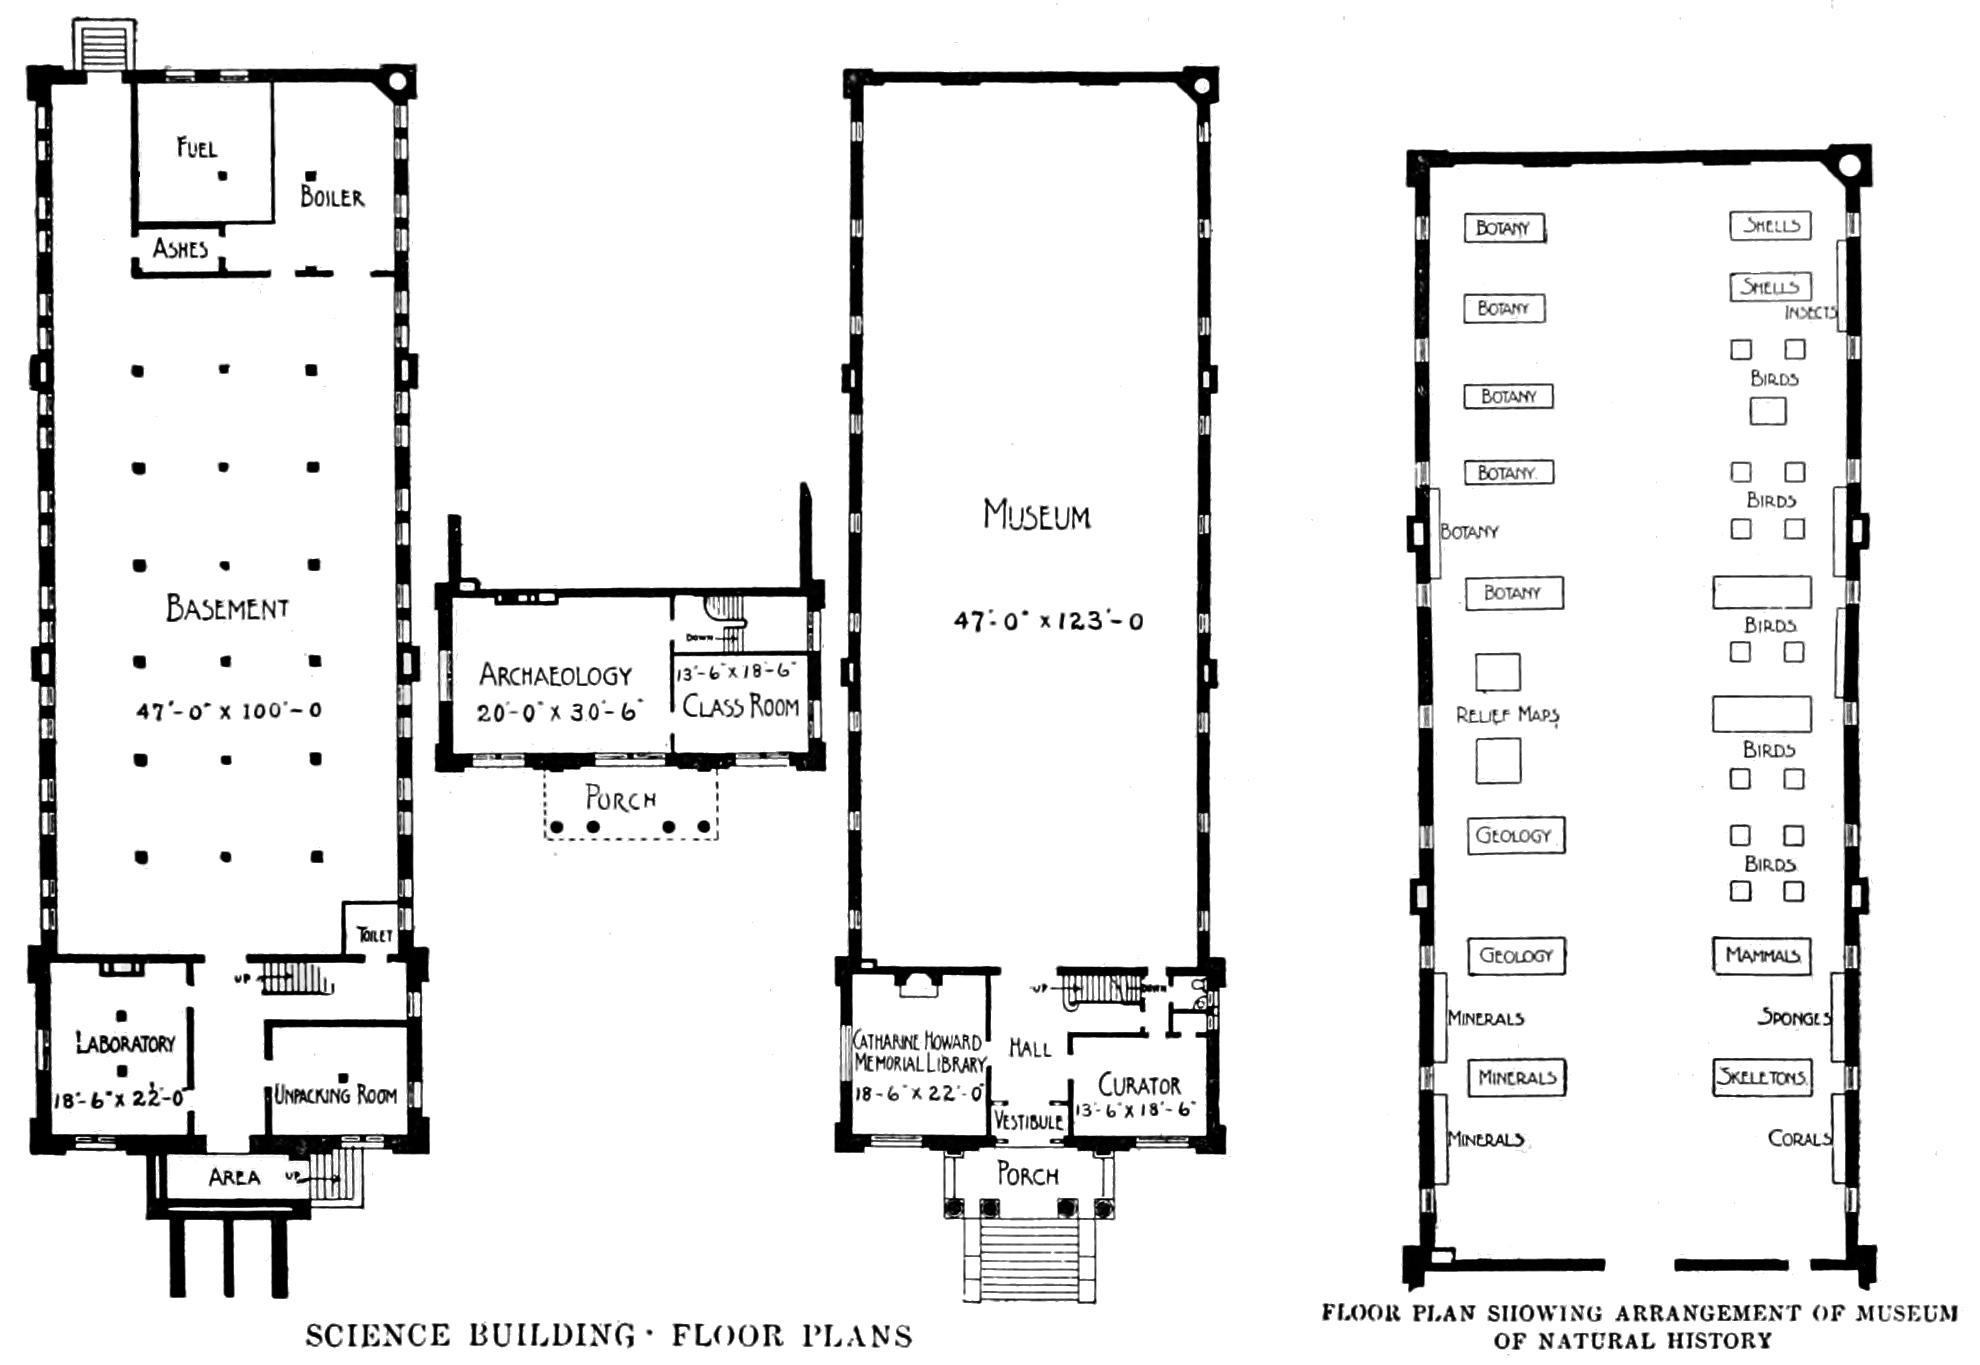 PSM V63 D047 Floorplan of the Springfield museum of natural history.png